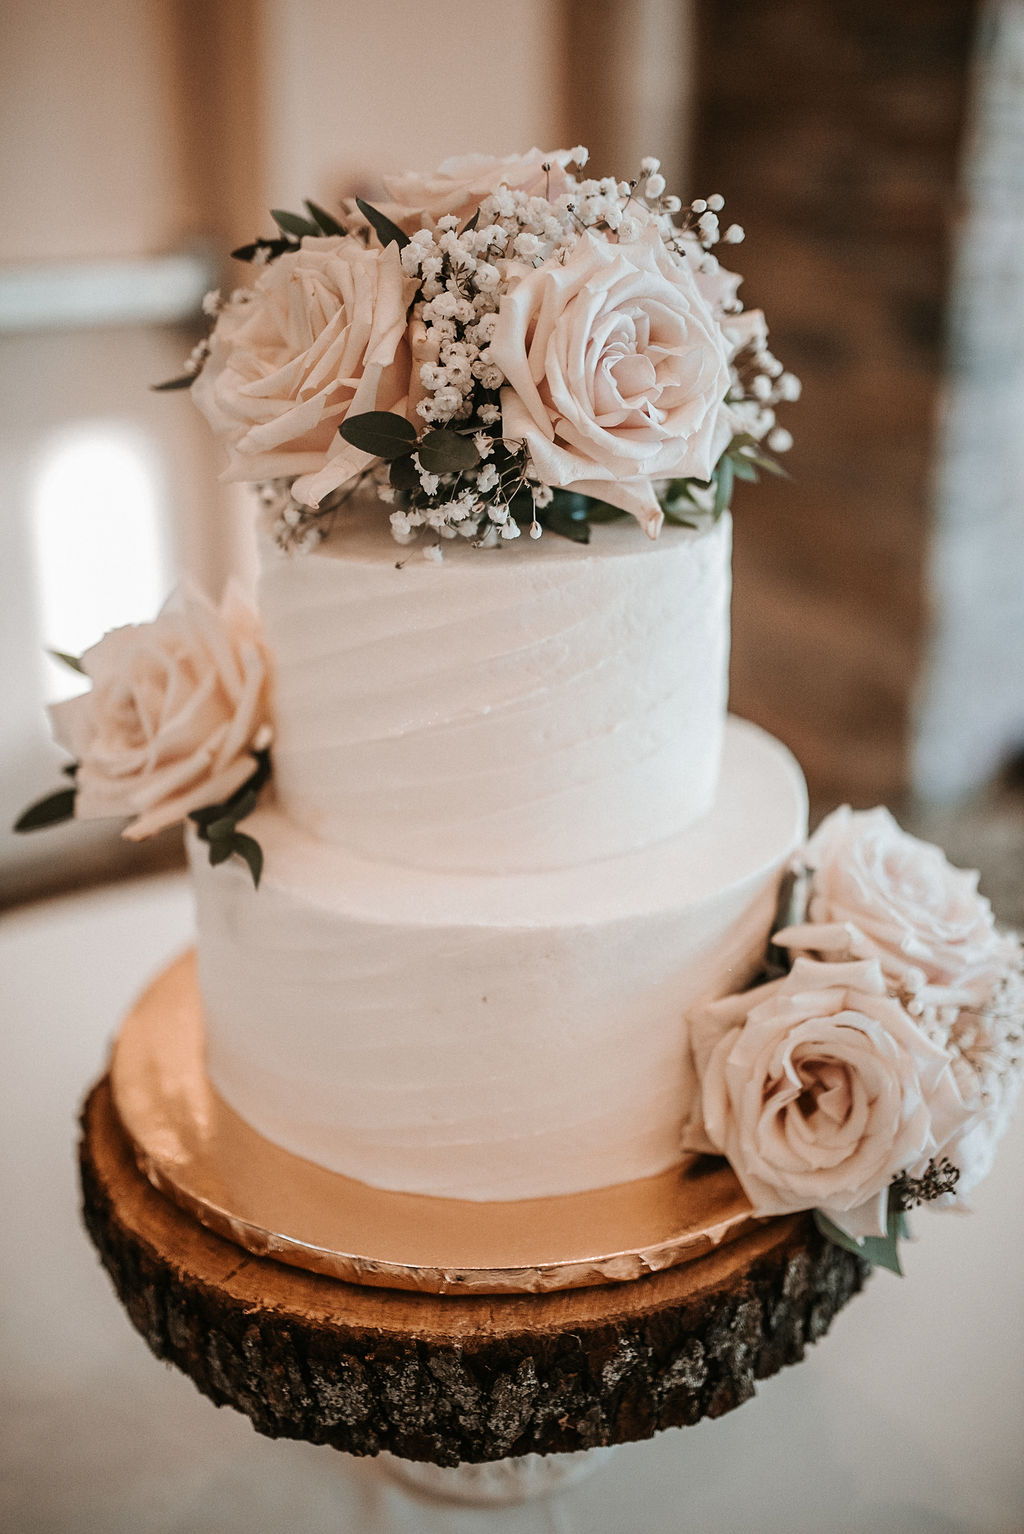 Wedding Cake Detail Shot at The Woodlands at Algonkian